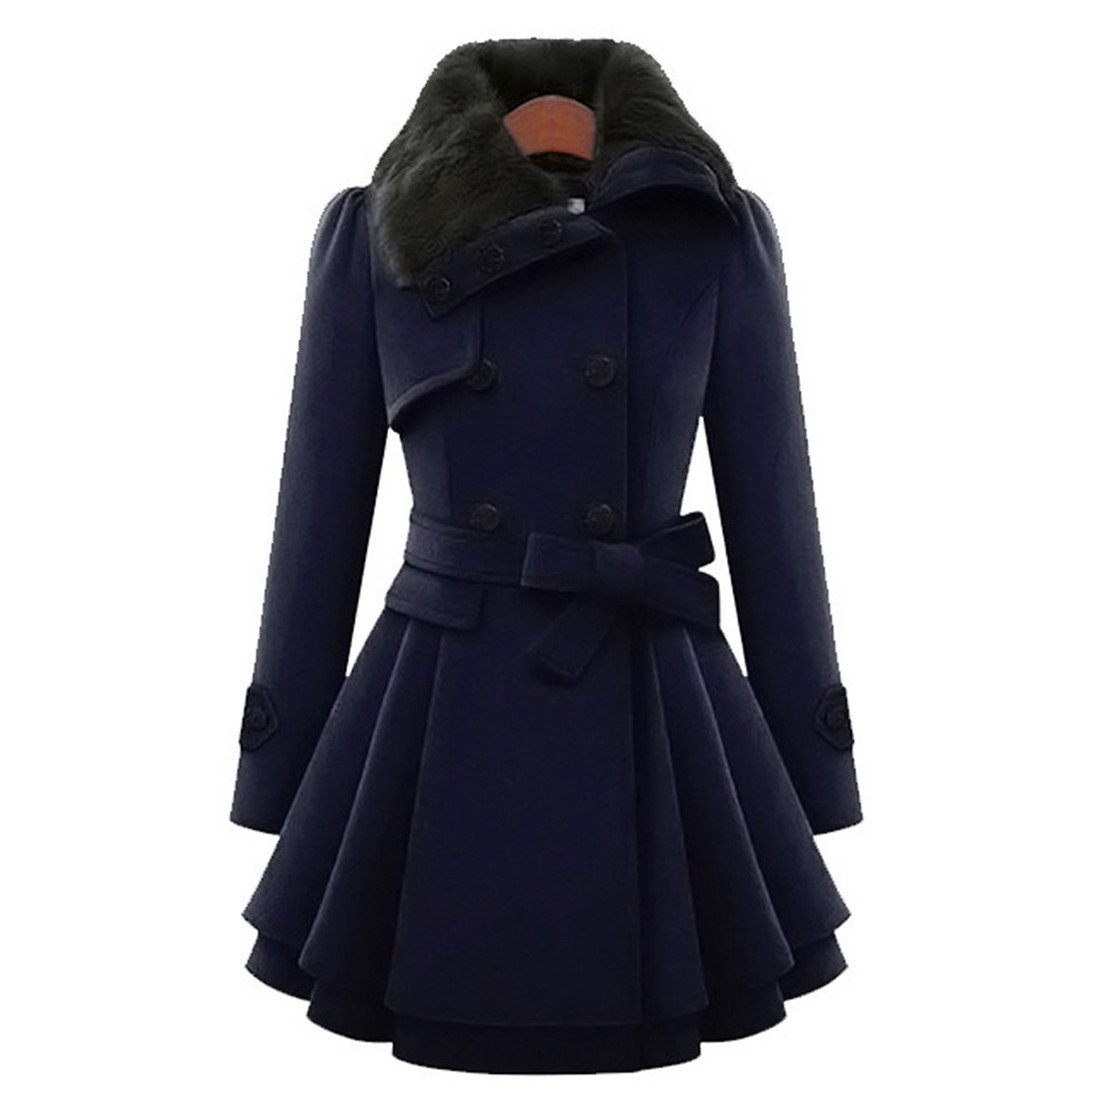 Mose New Fashion Women Plus Size Long Sleeve Winter Warm Slim Thicker Parka Long Coat Overcoat (Dark Blue, 3XL)